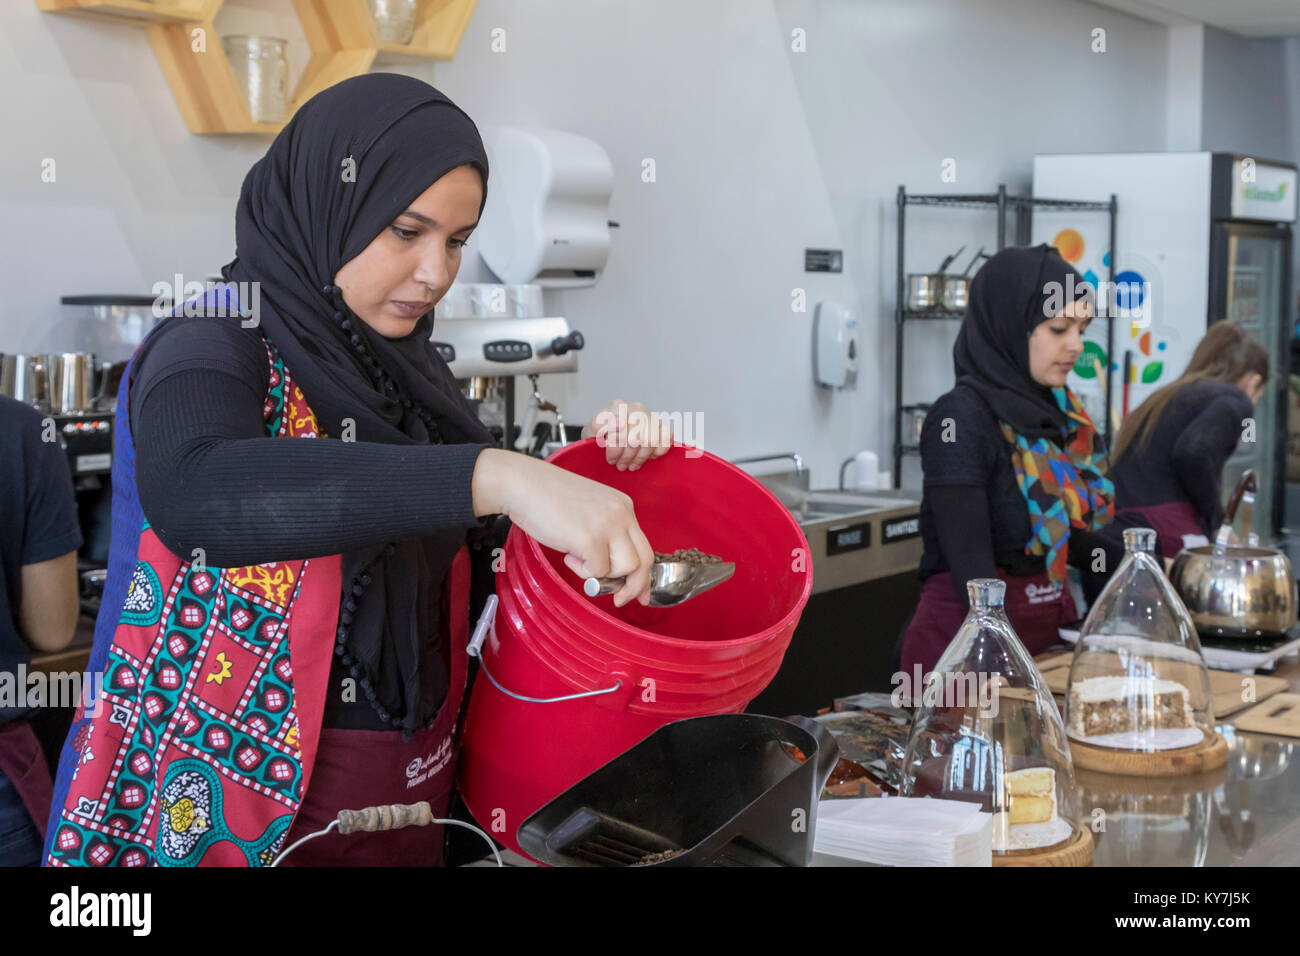 Dearborn, Michigan - A coffee shop called Qahwah House, which imports and serves coffee exclusively from Yemen. - Stock Image